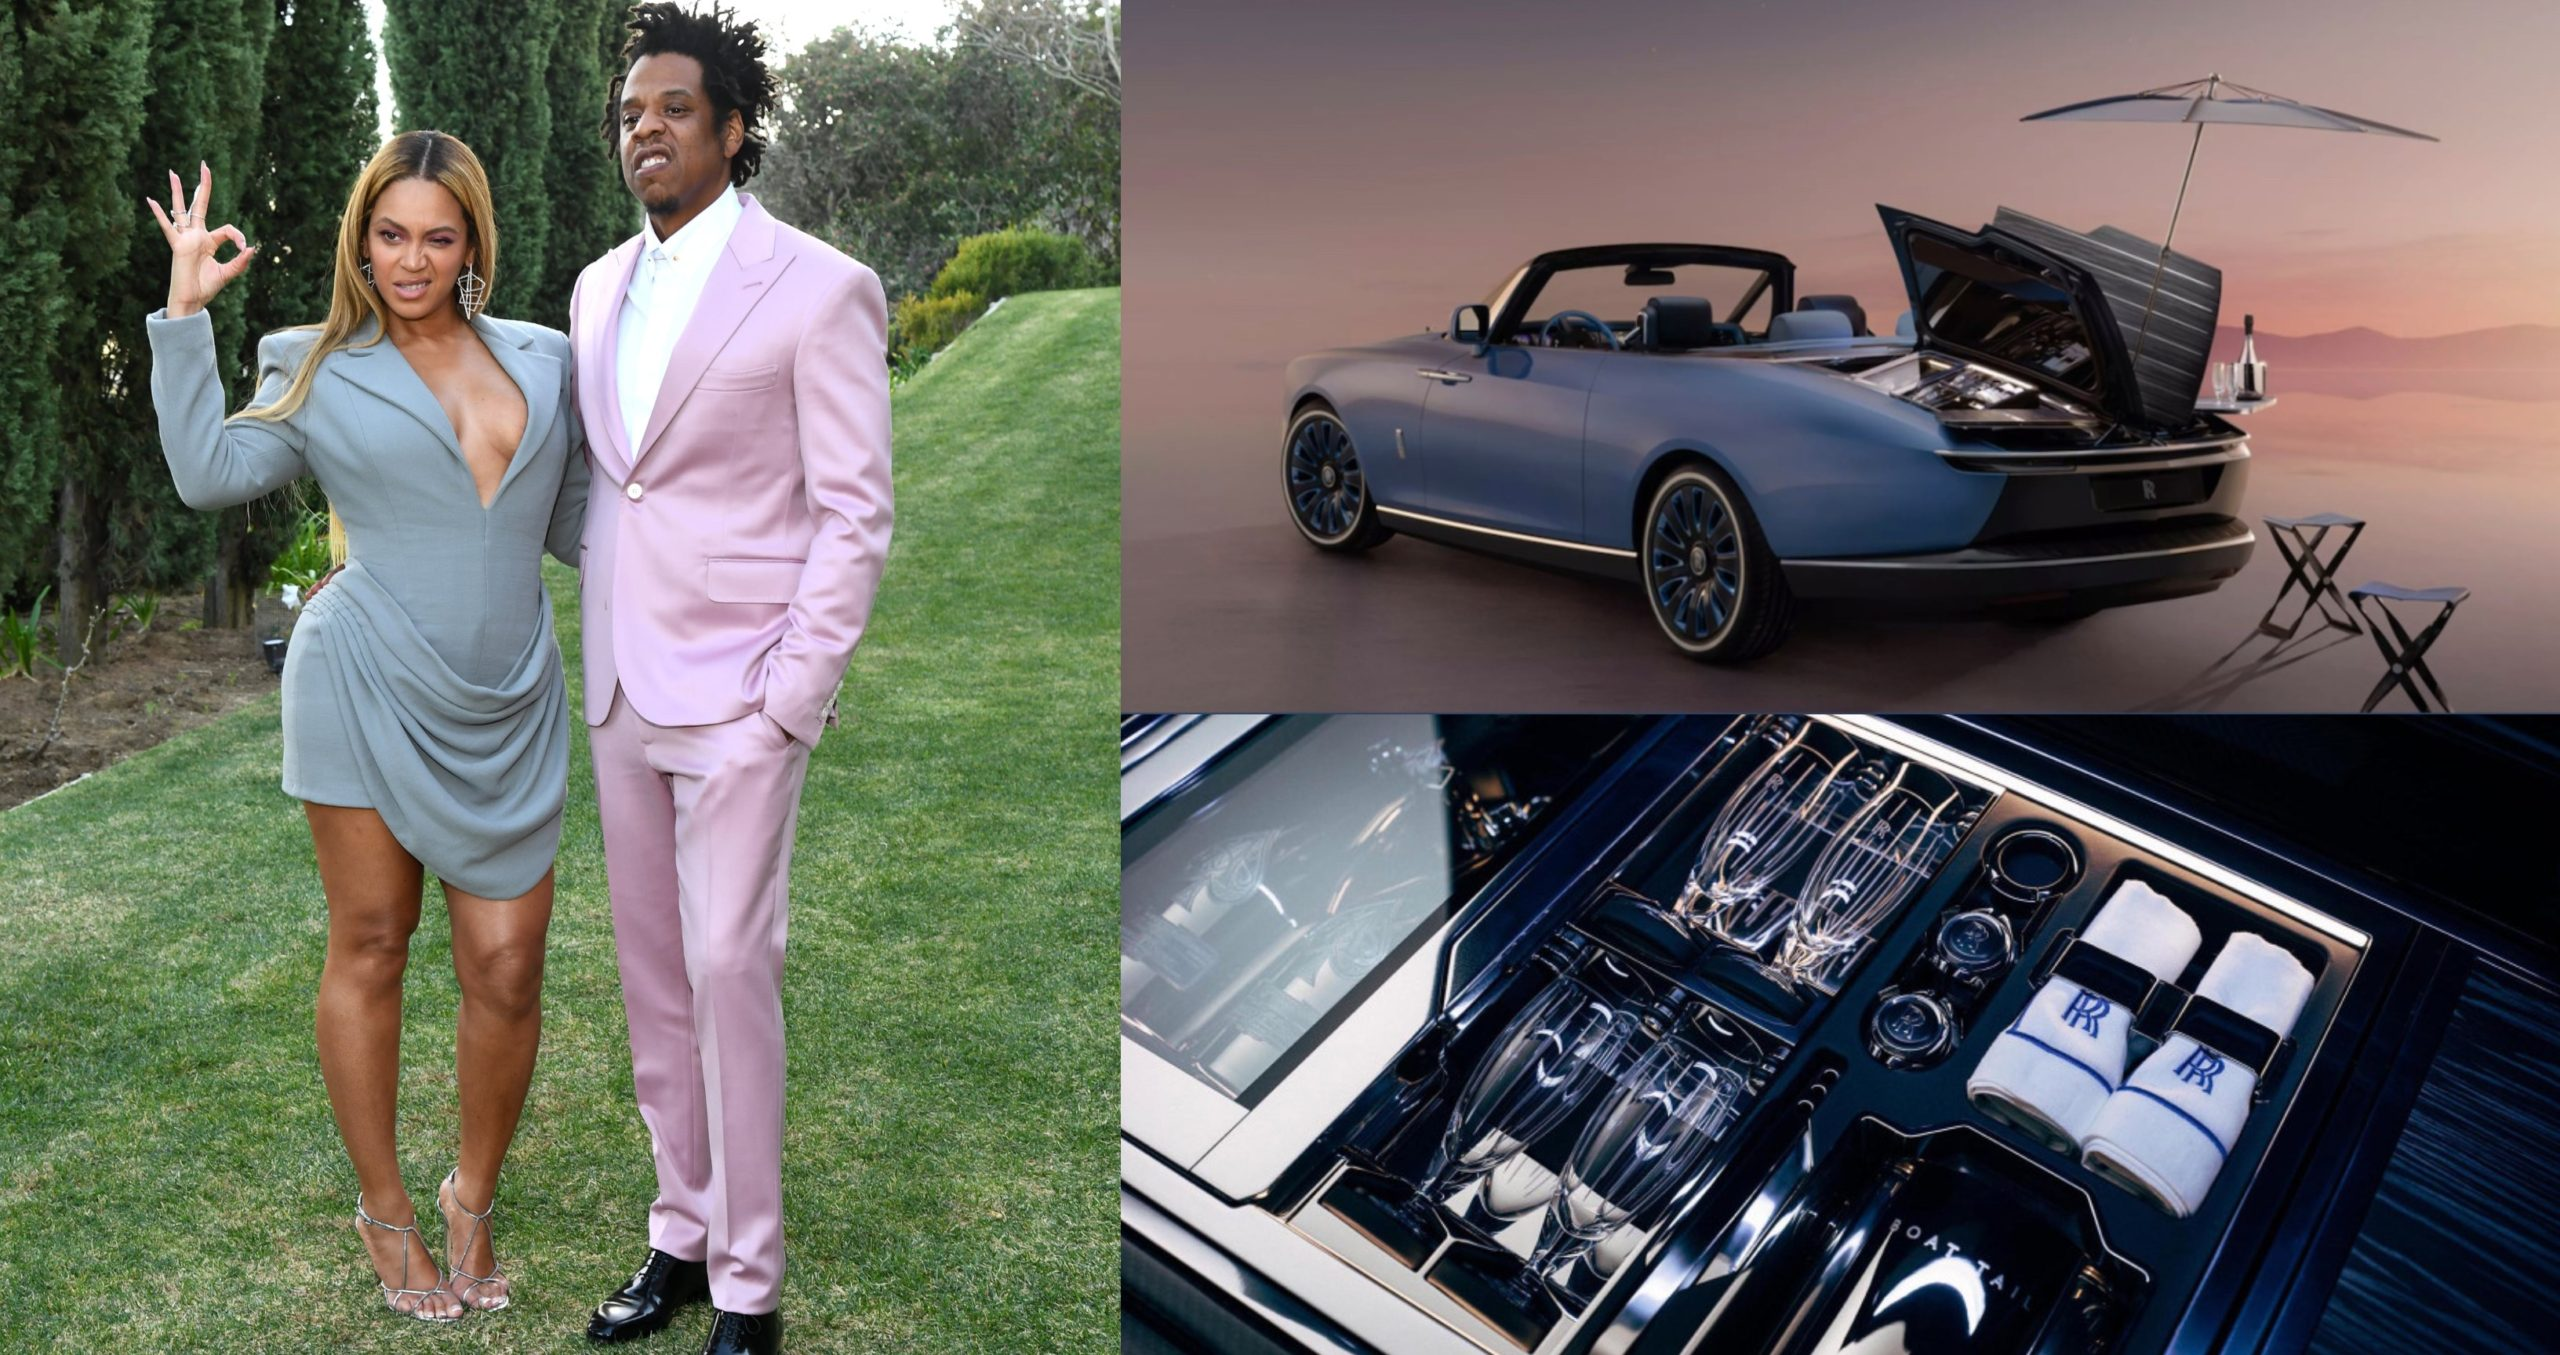 Beyoncé and Jay Z buy world's most expensive car